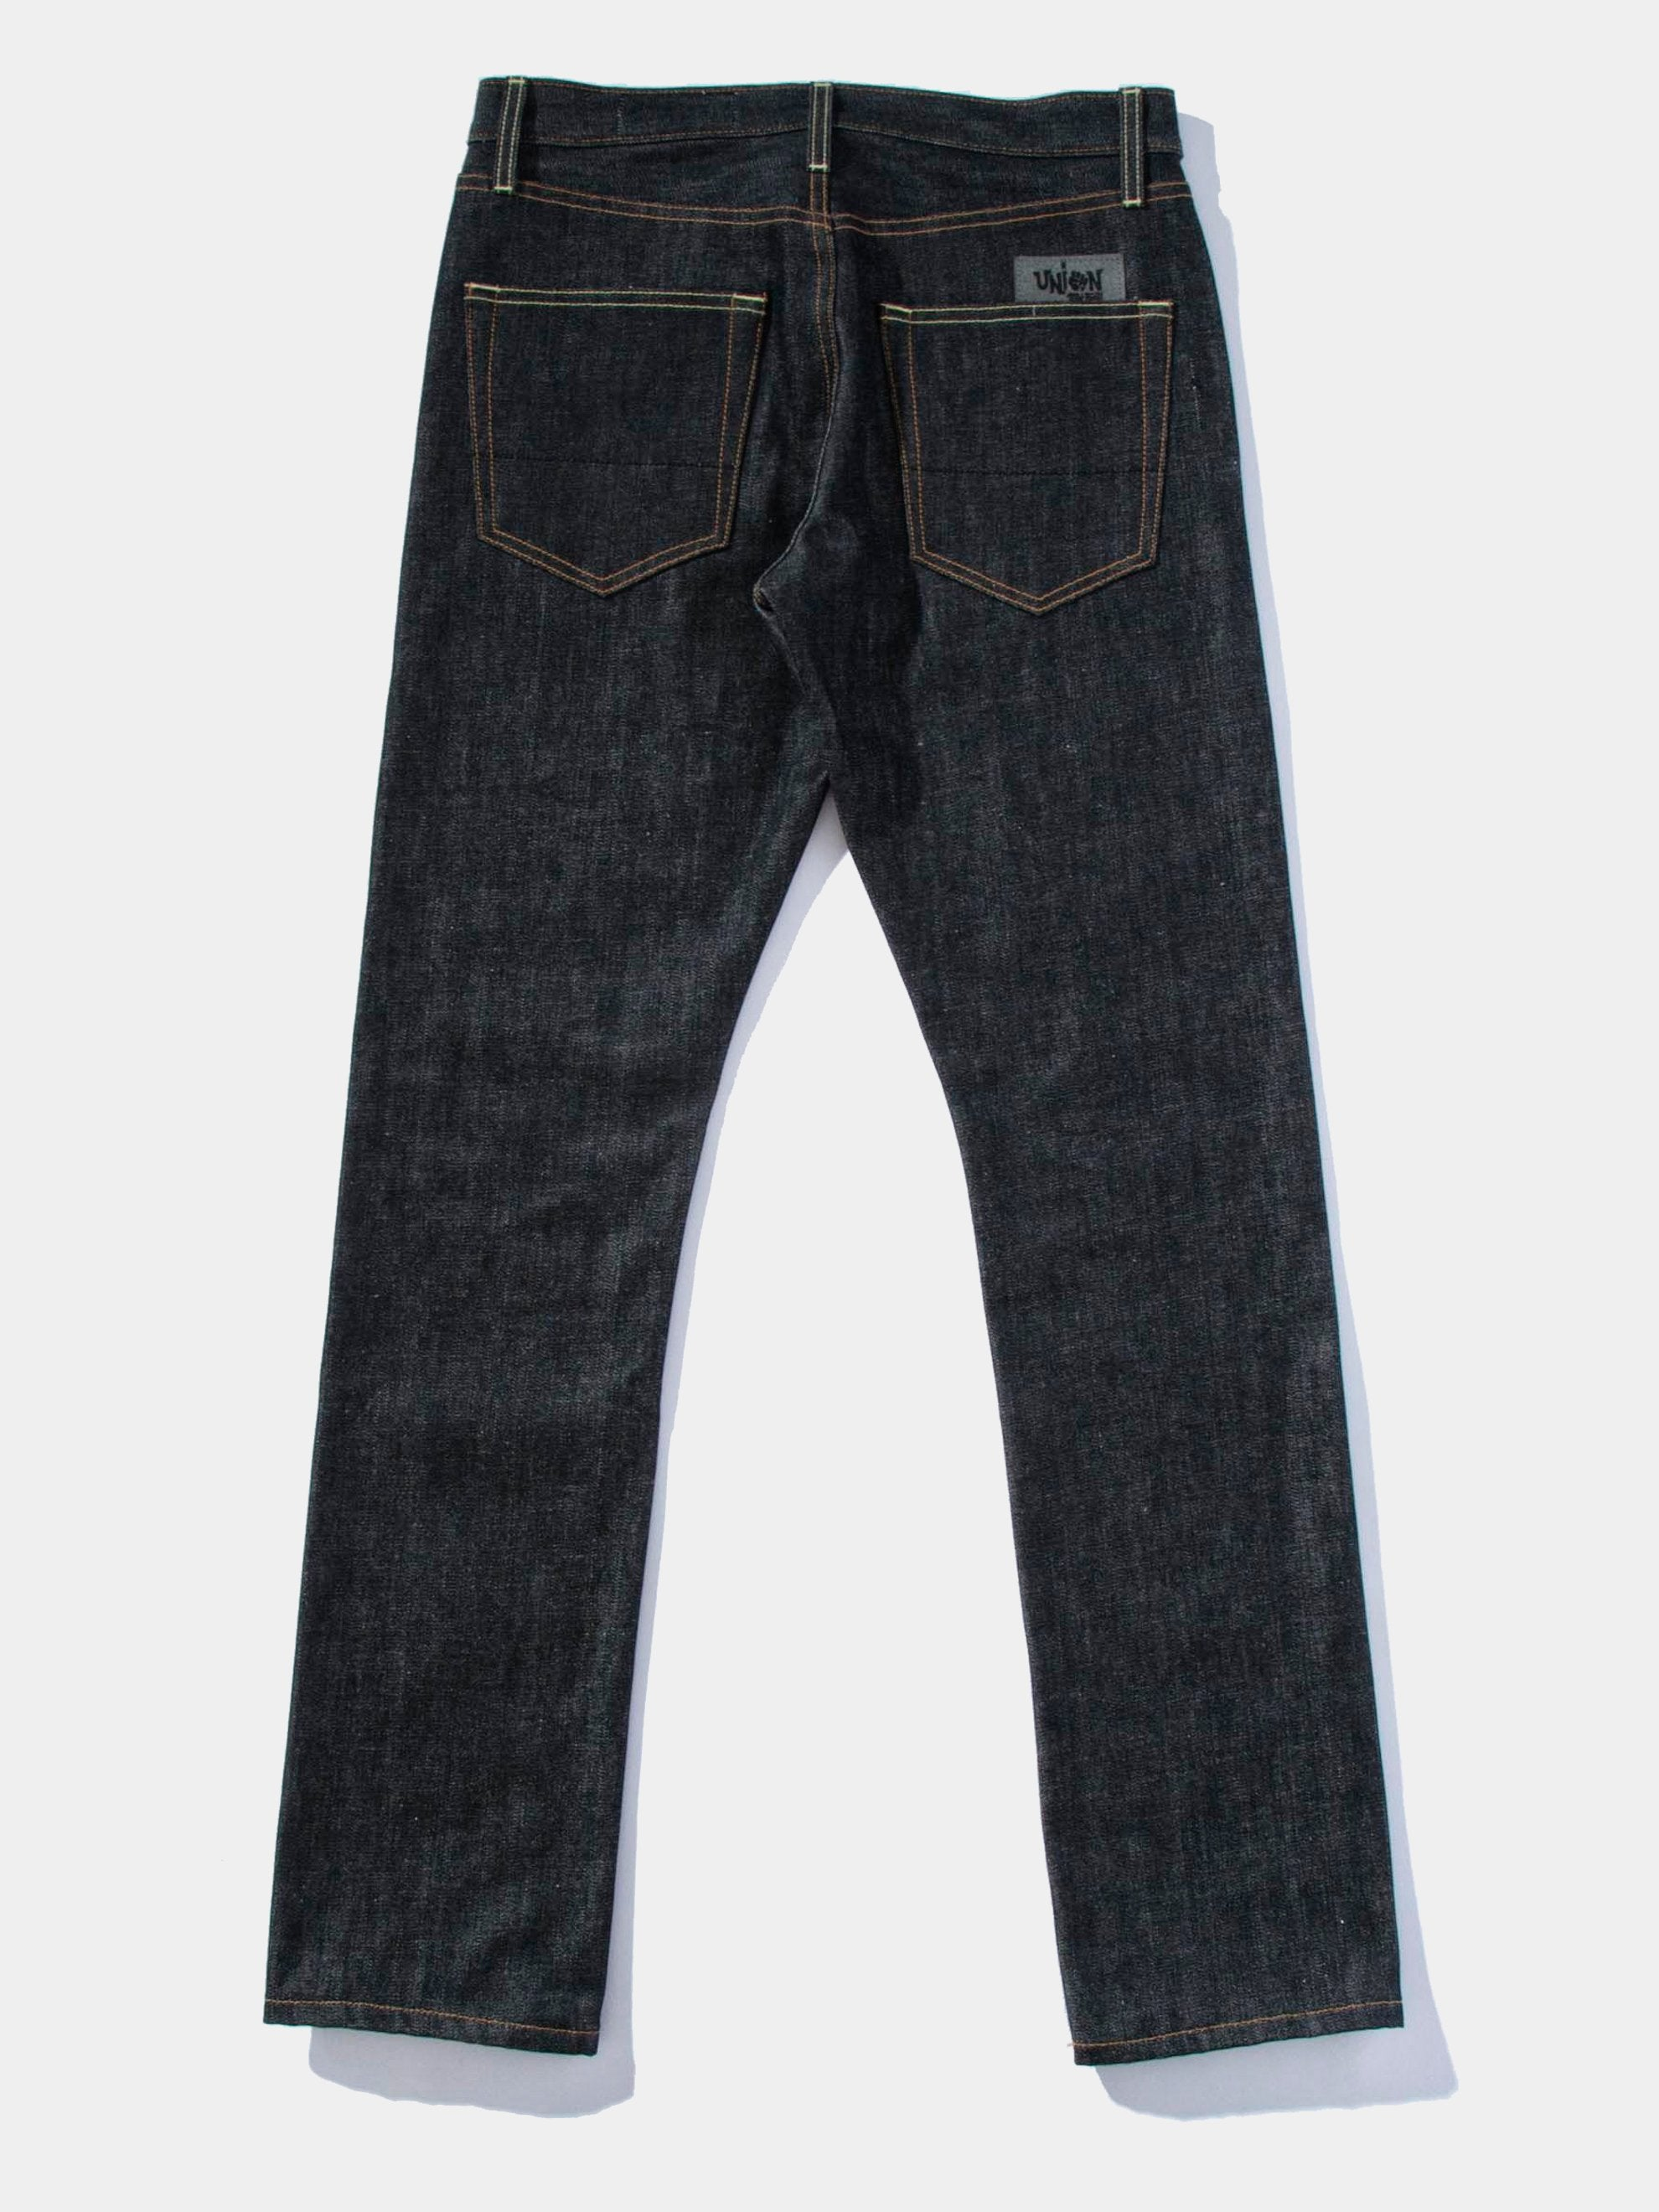 Black Mr. Wilson Union Jean 3